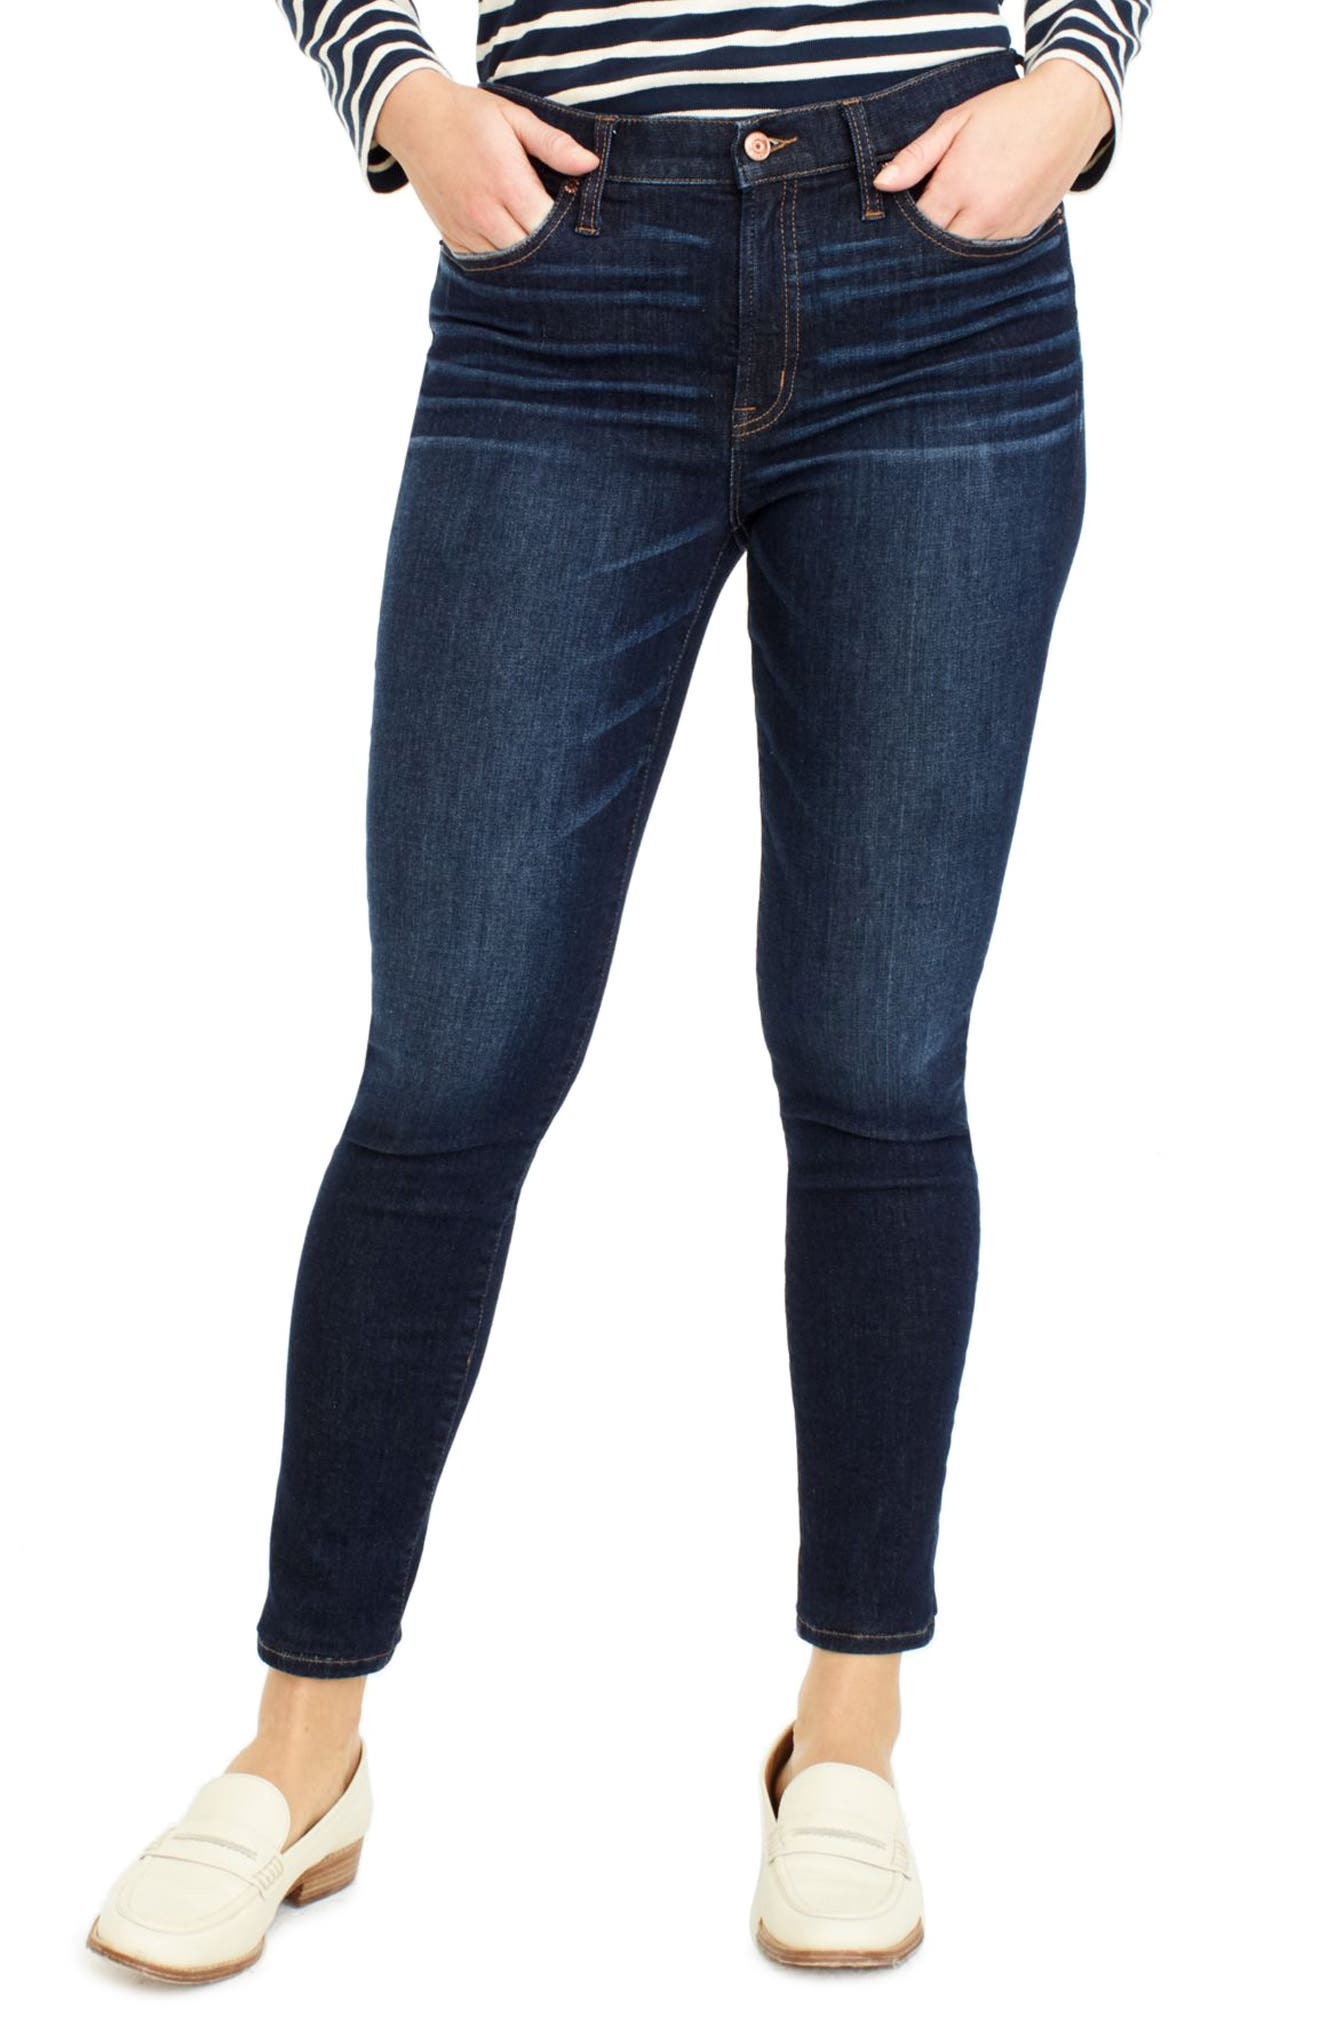 J.Crew High Rise Toothpick Jeans,                             Main thumbnail 1, color,                             Solano Wash